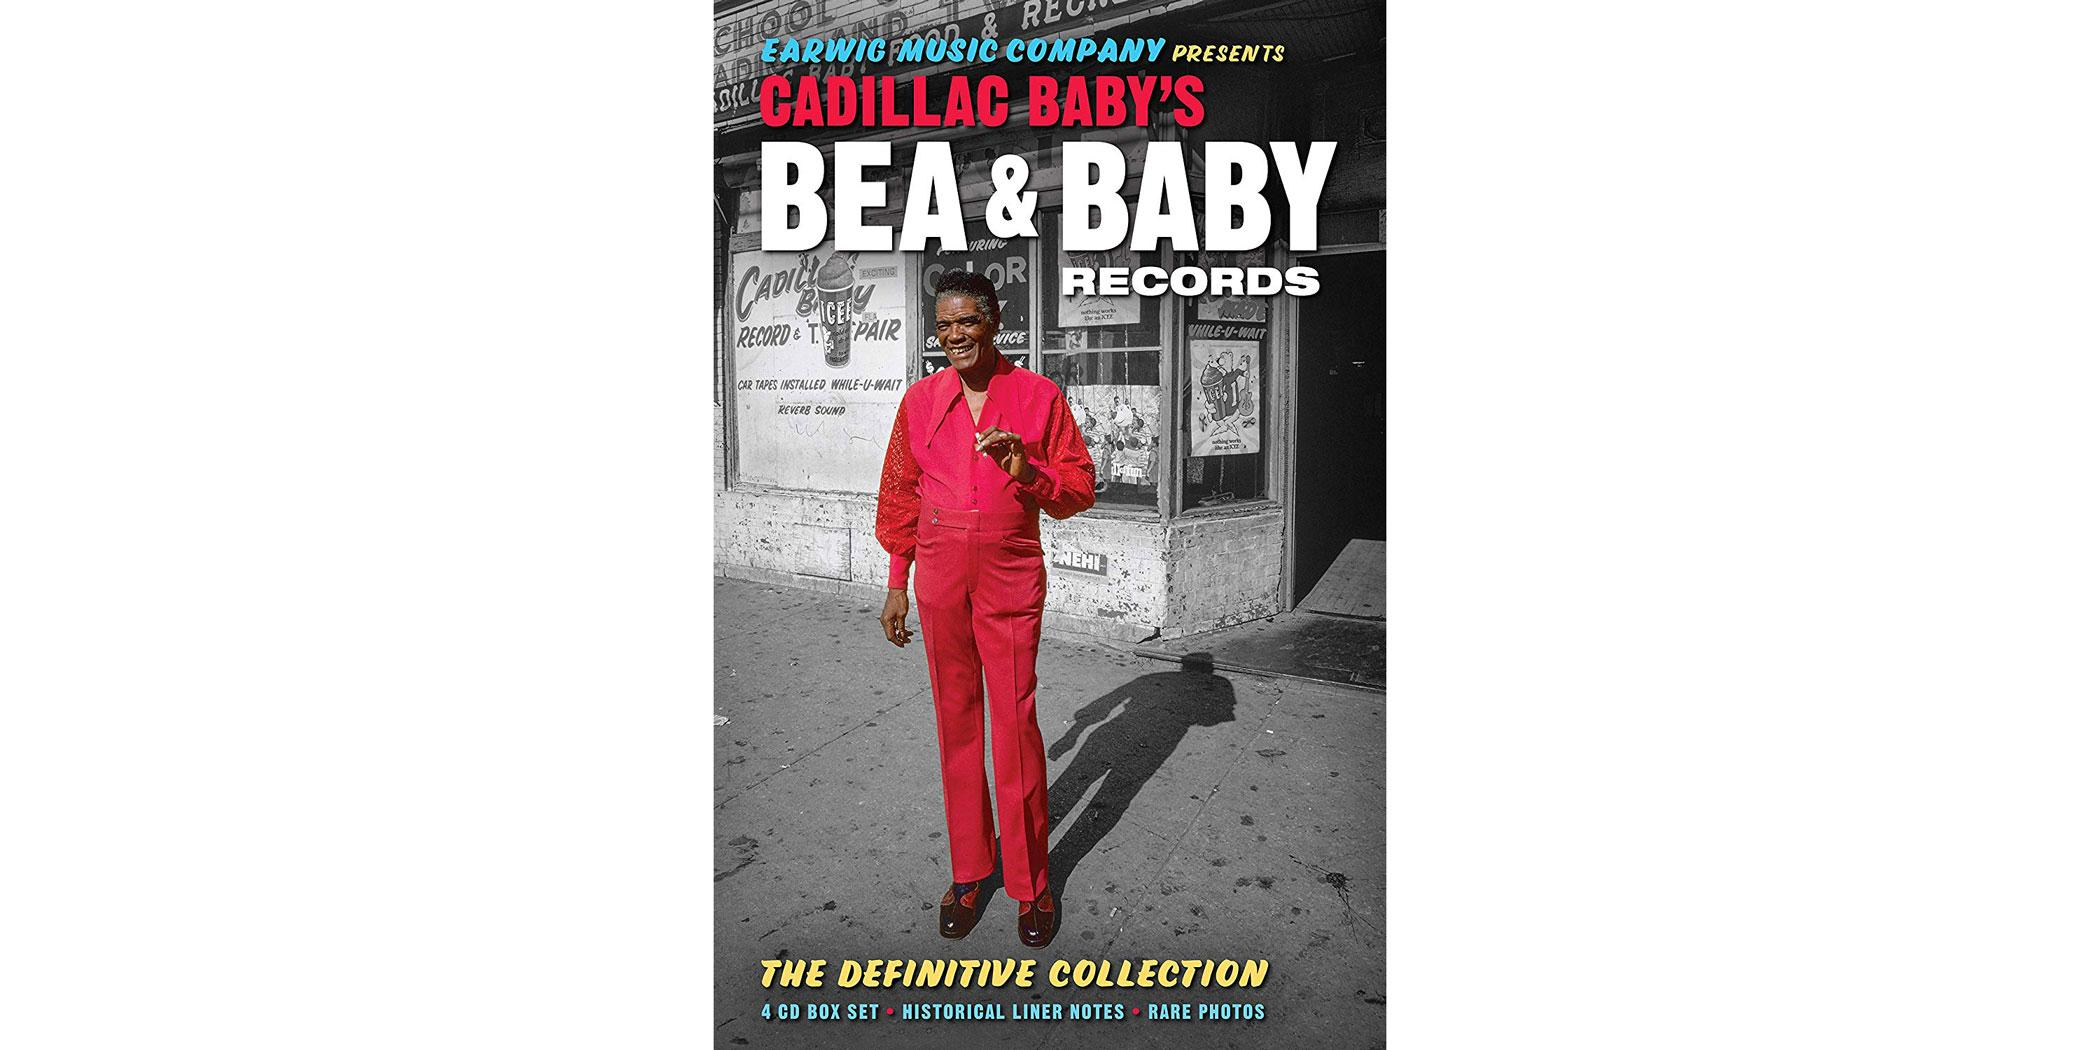 Cadillac Baby's Bea & Baby Records: The Definitive Collection